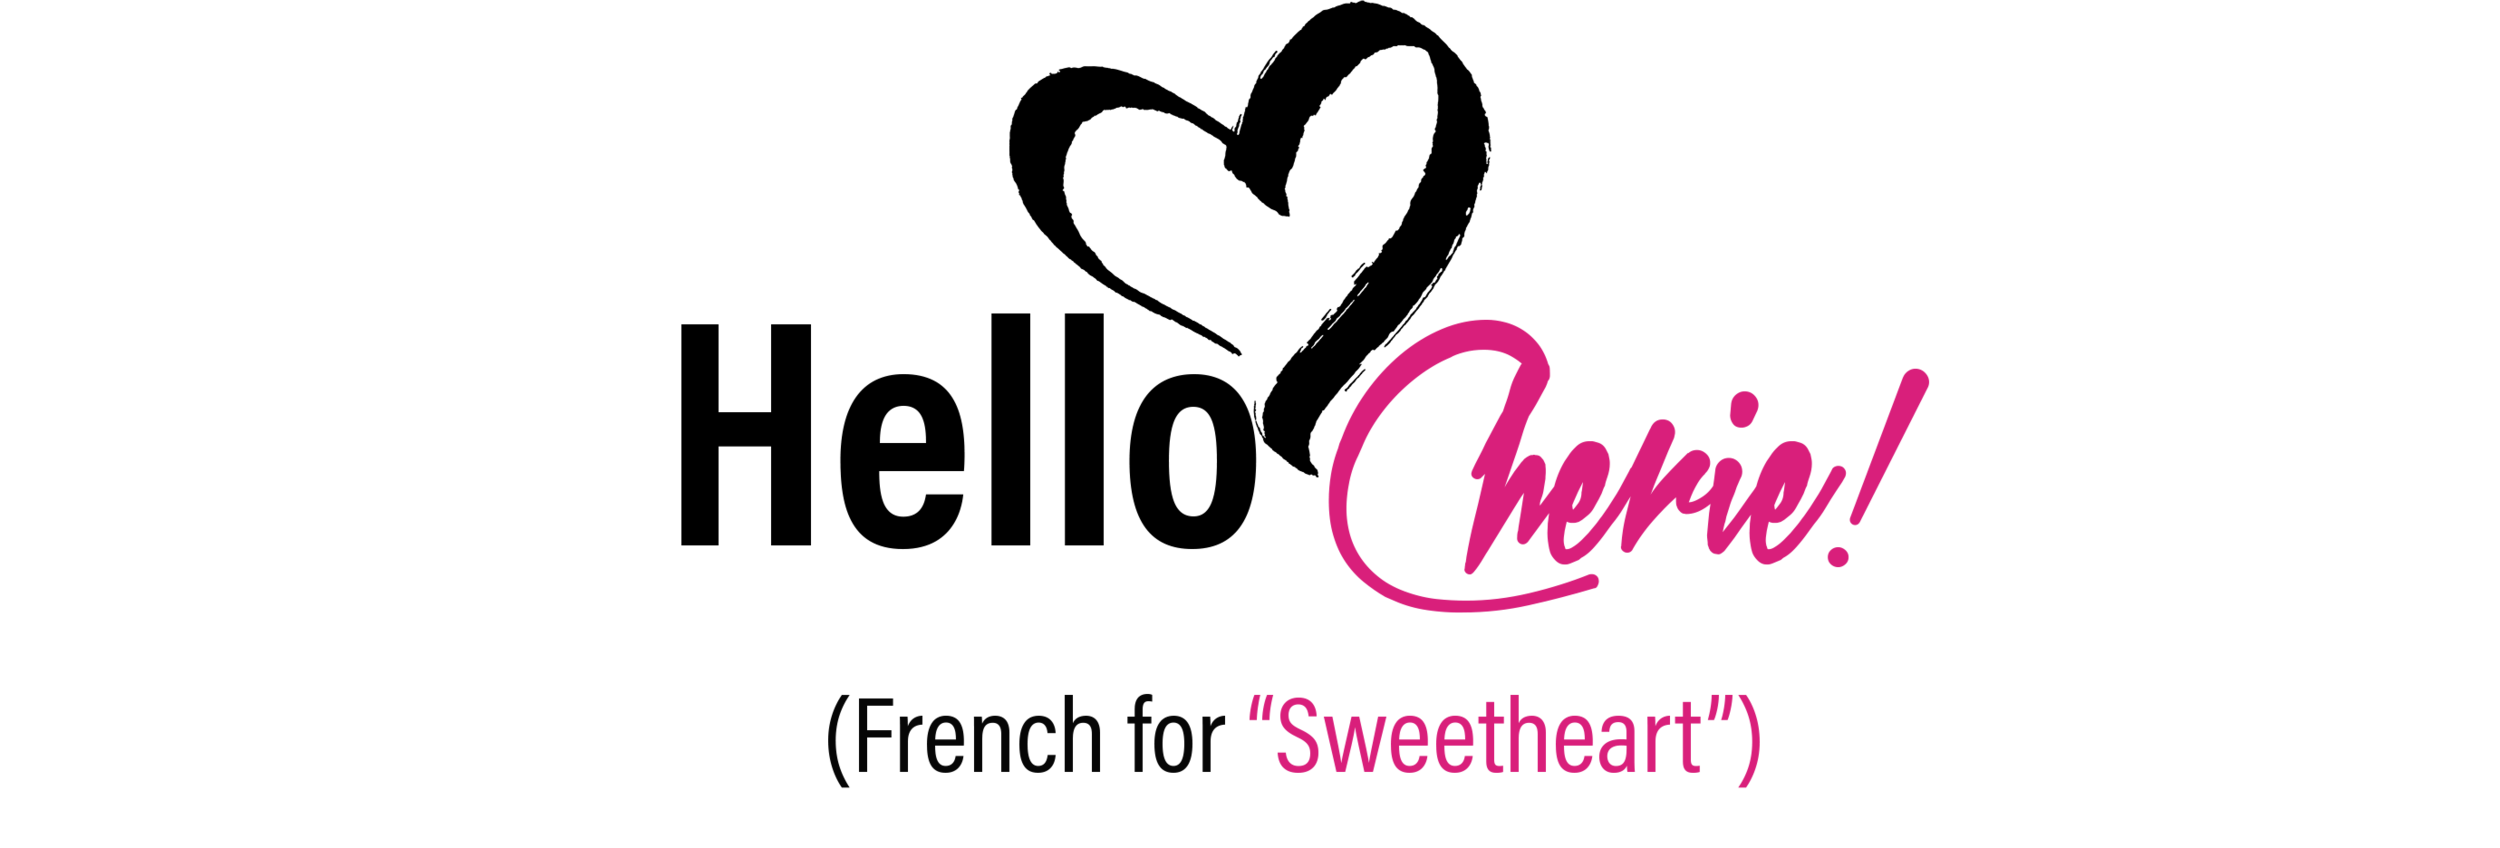 Hello Cherie1.png